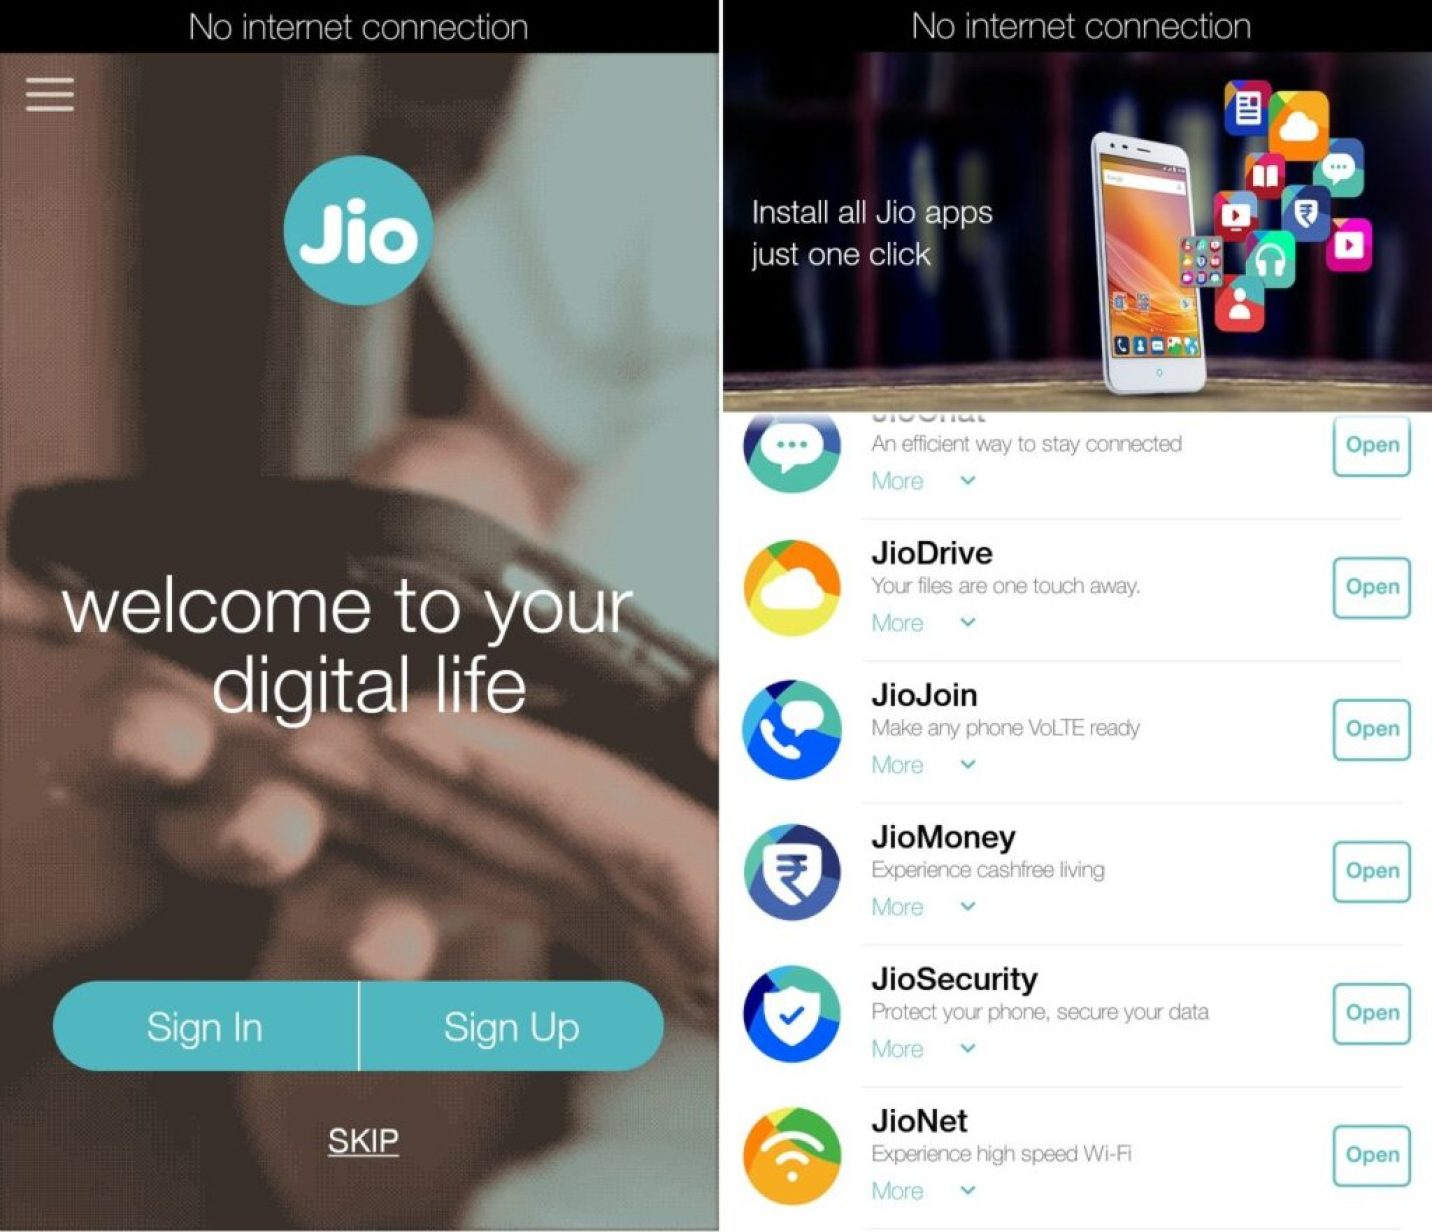 How to Get Reliance Jio SIM for FREE - Best Method